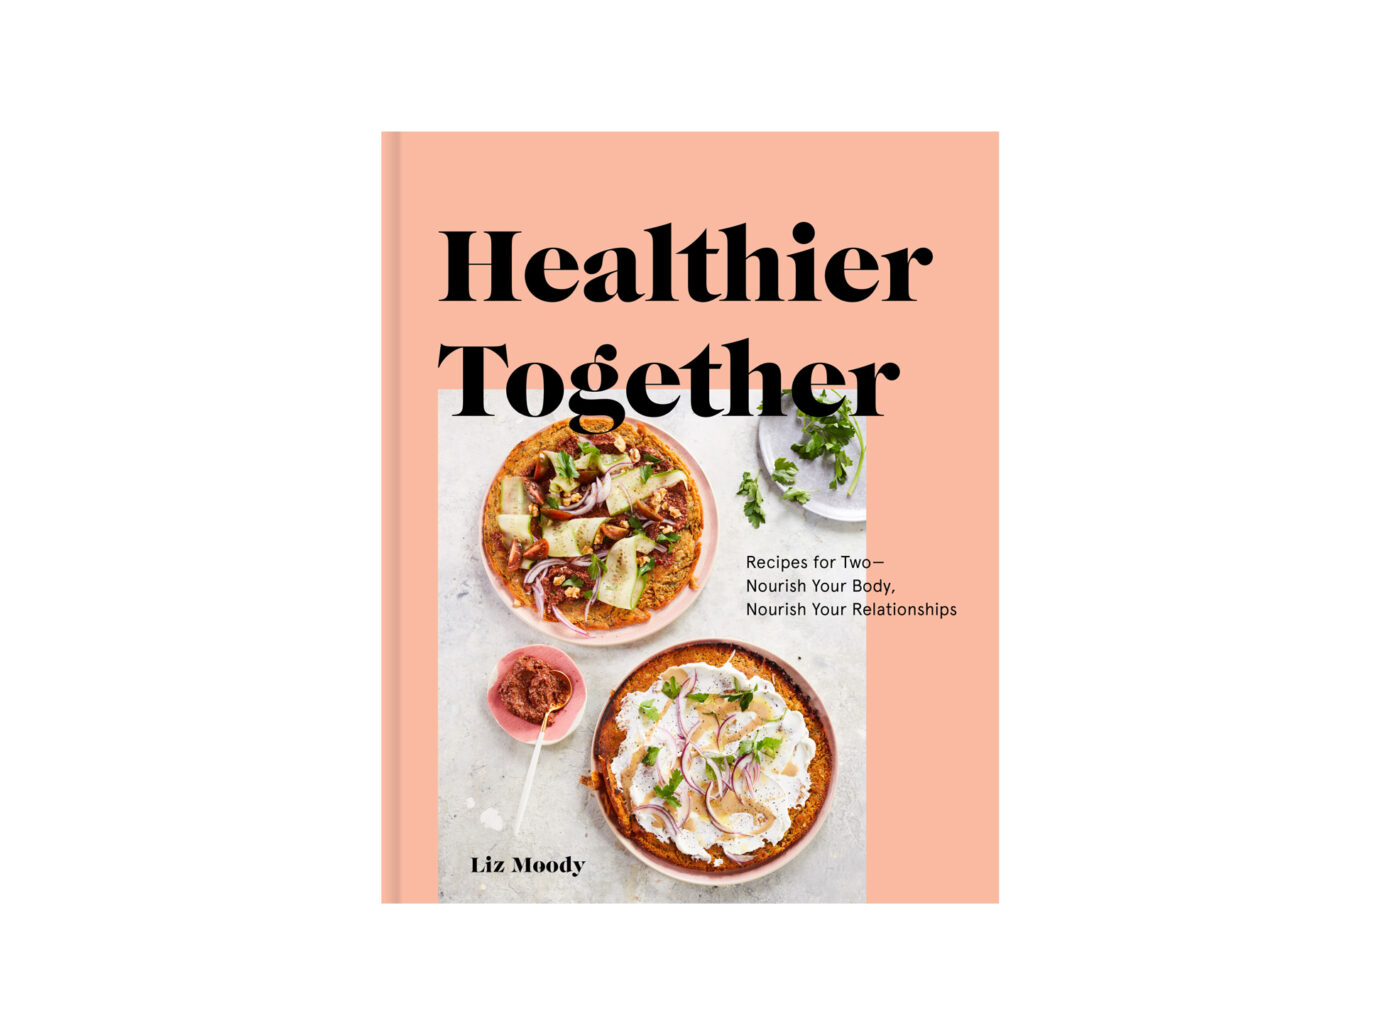 Healthier Together: Recipes for Two—Nourish Your Body, Nourish Your Relationships' Cookbook